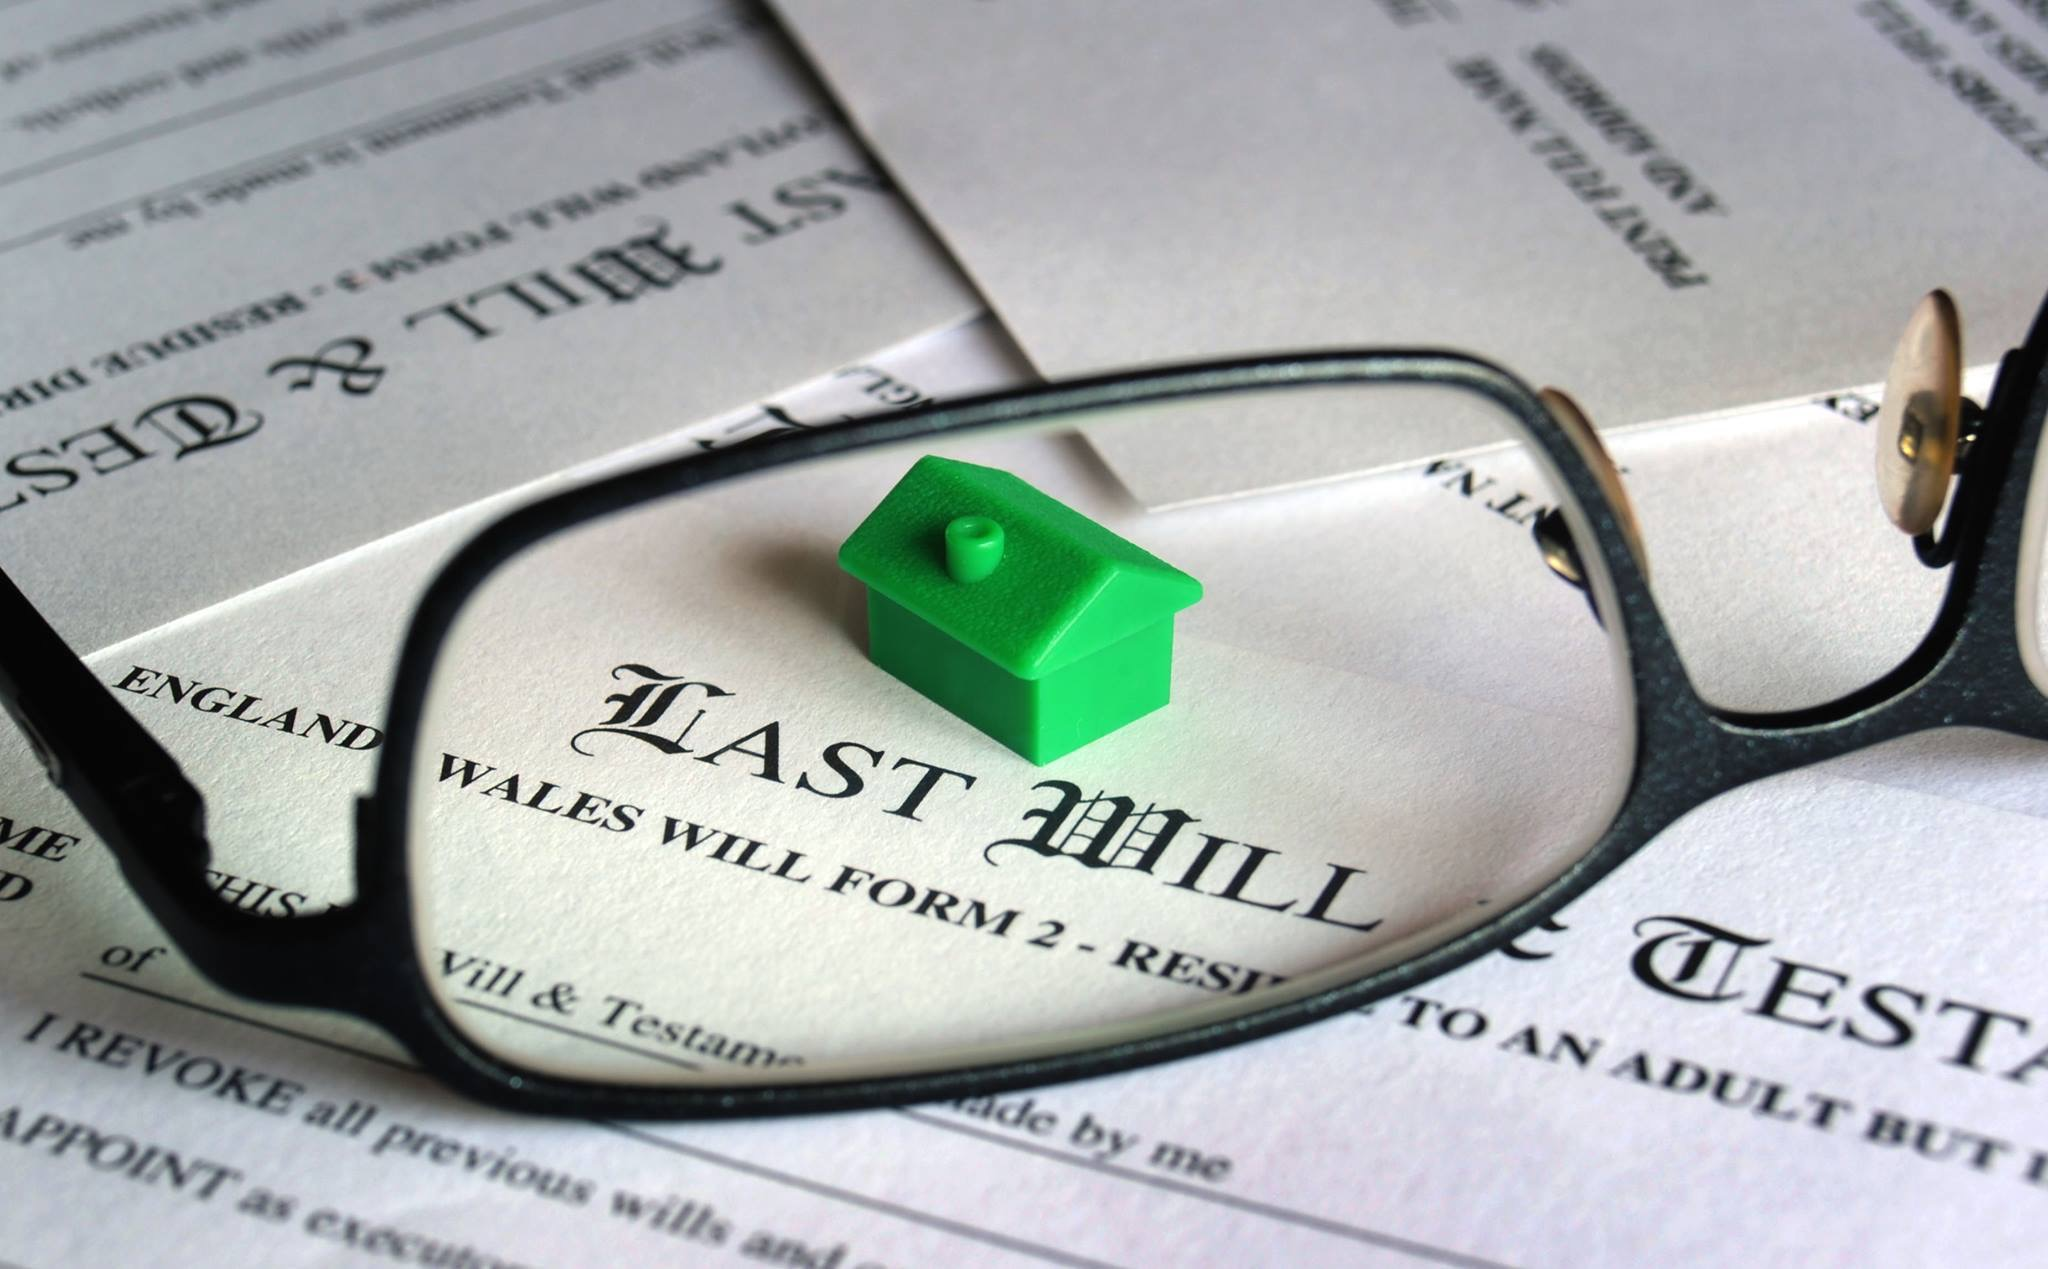 There are a number of essential things a last will and testament can do for you, such as distribute family heirlooms and name a guardian for minor children, but there are some equally important things a will  won't  do.